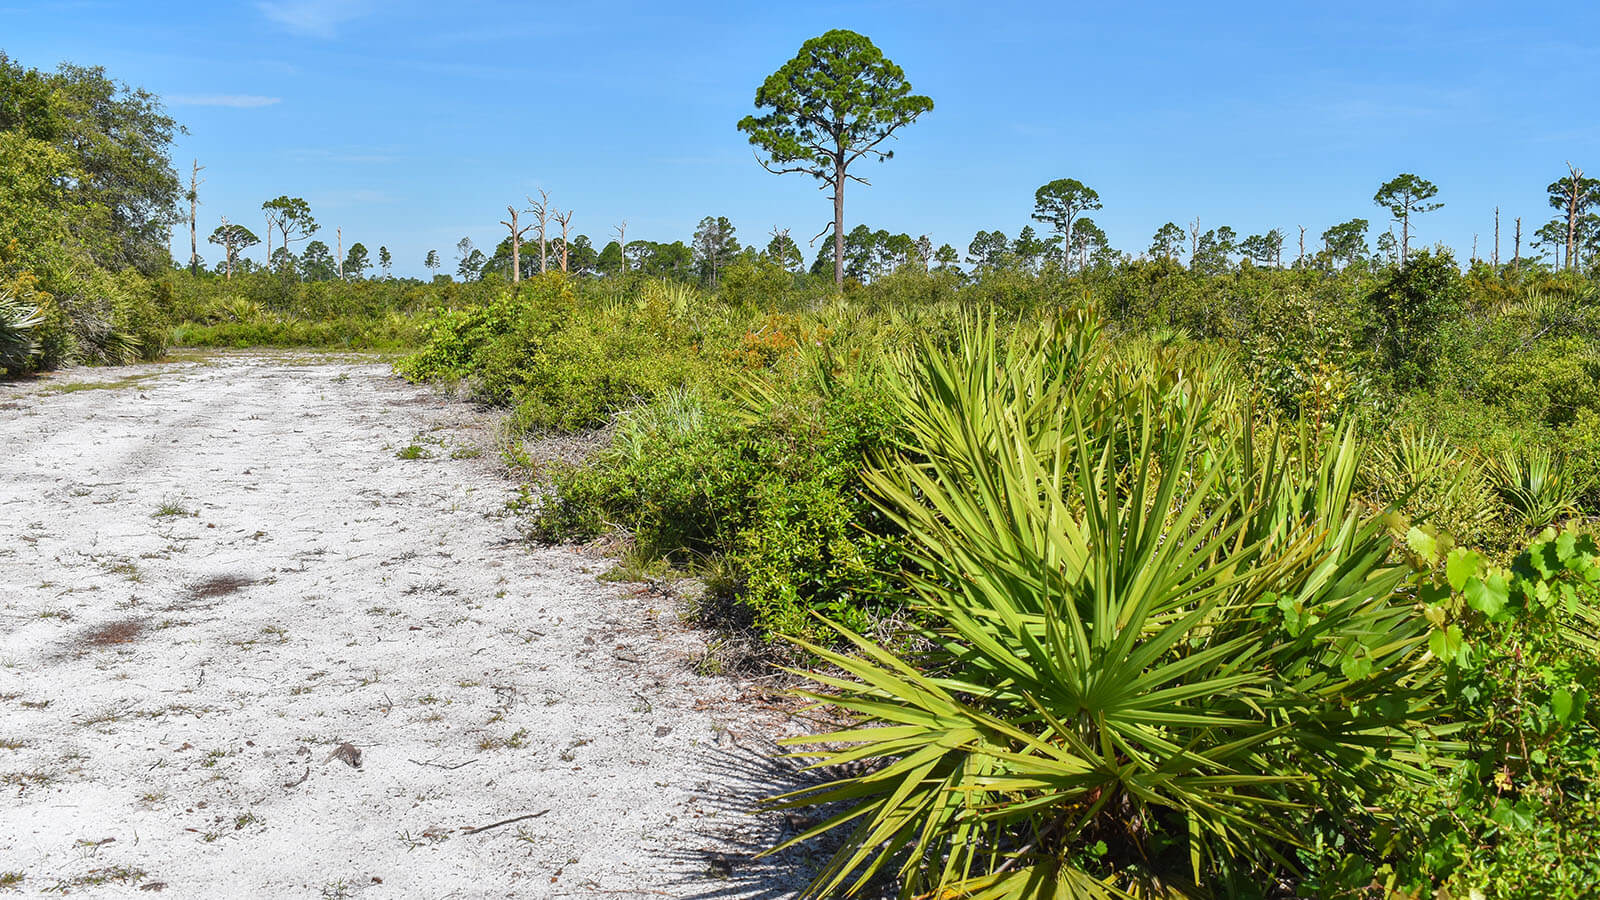 White sand and scrub plants